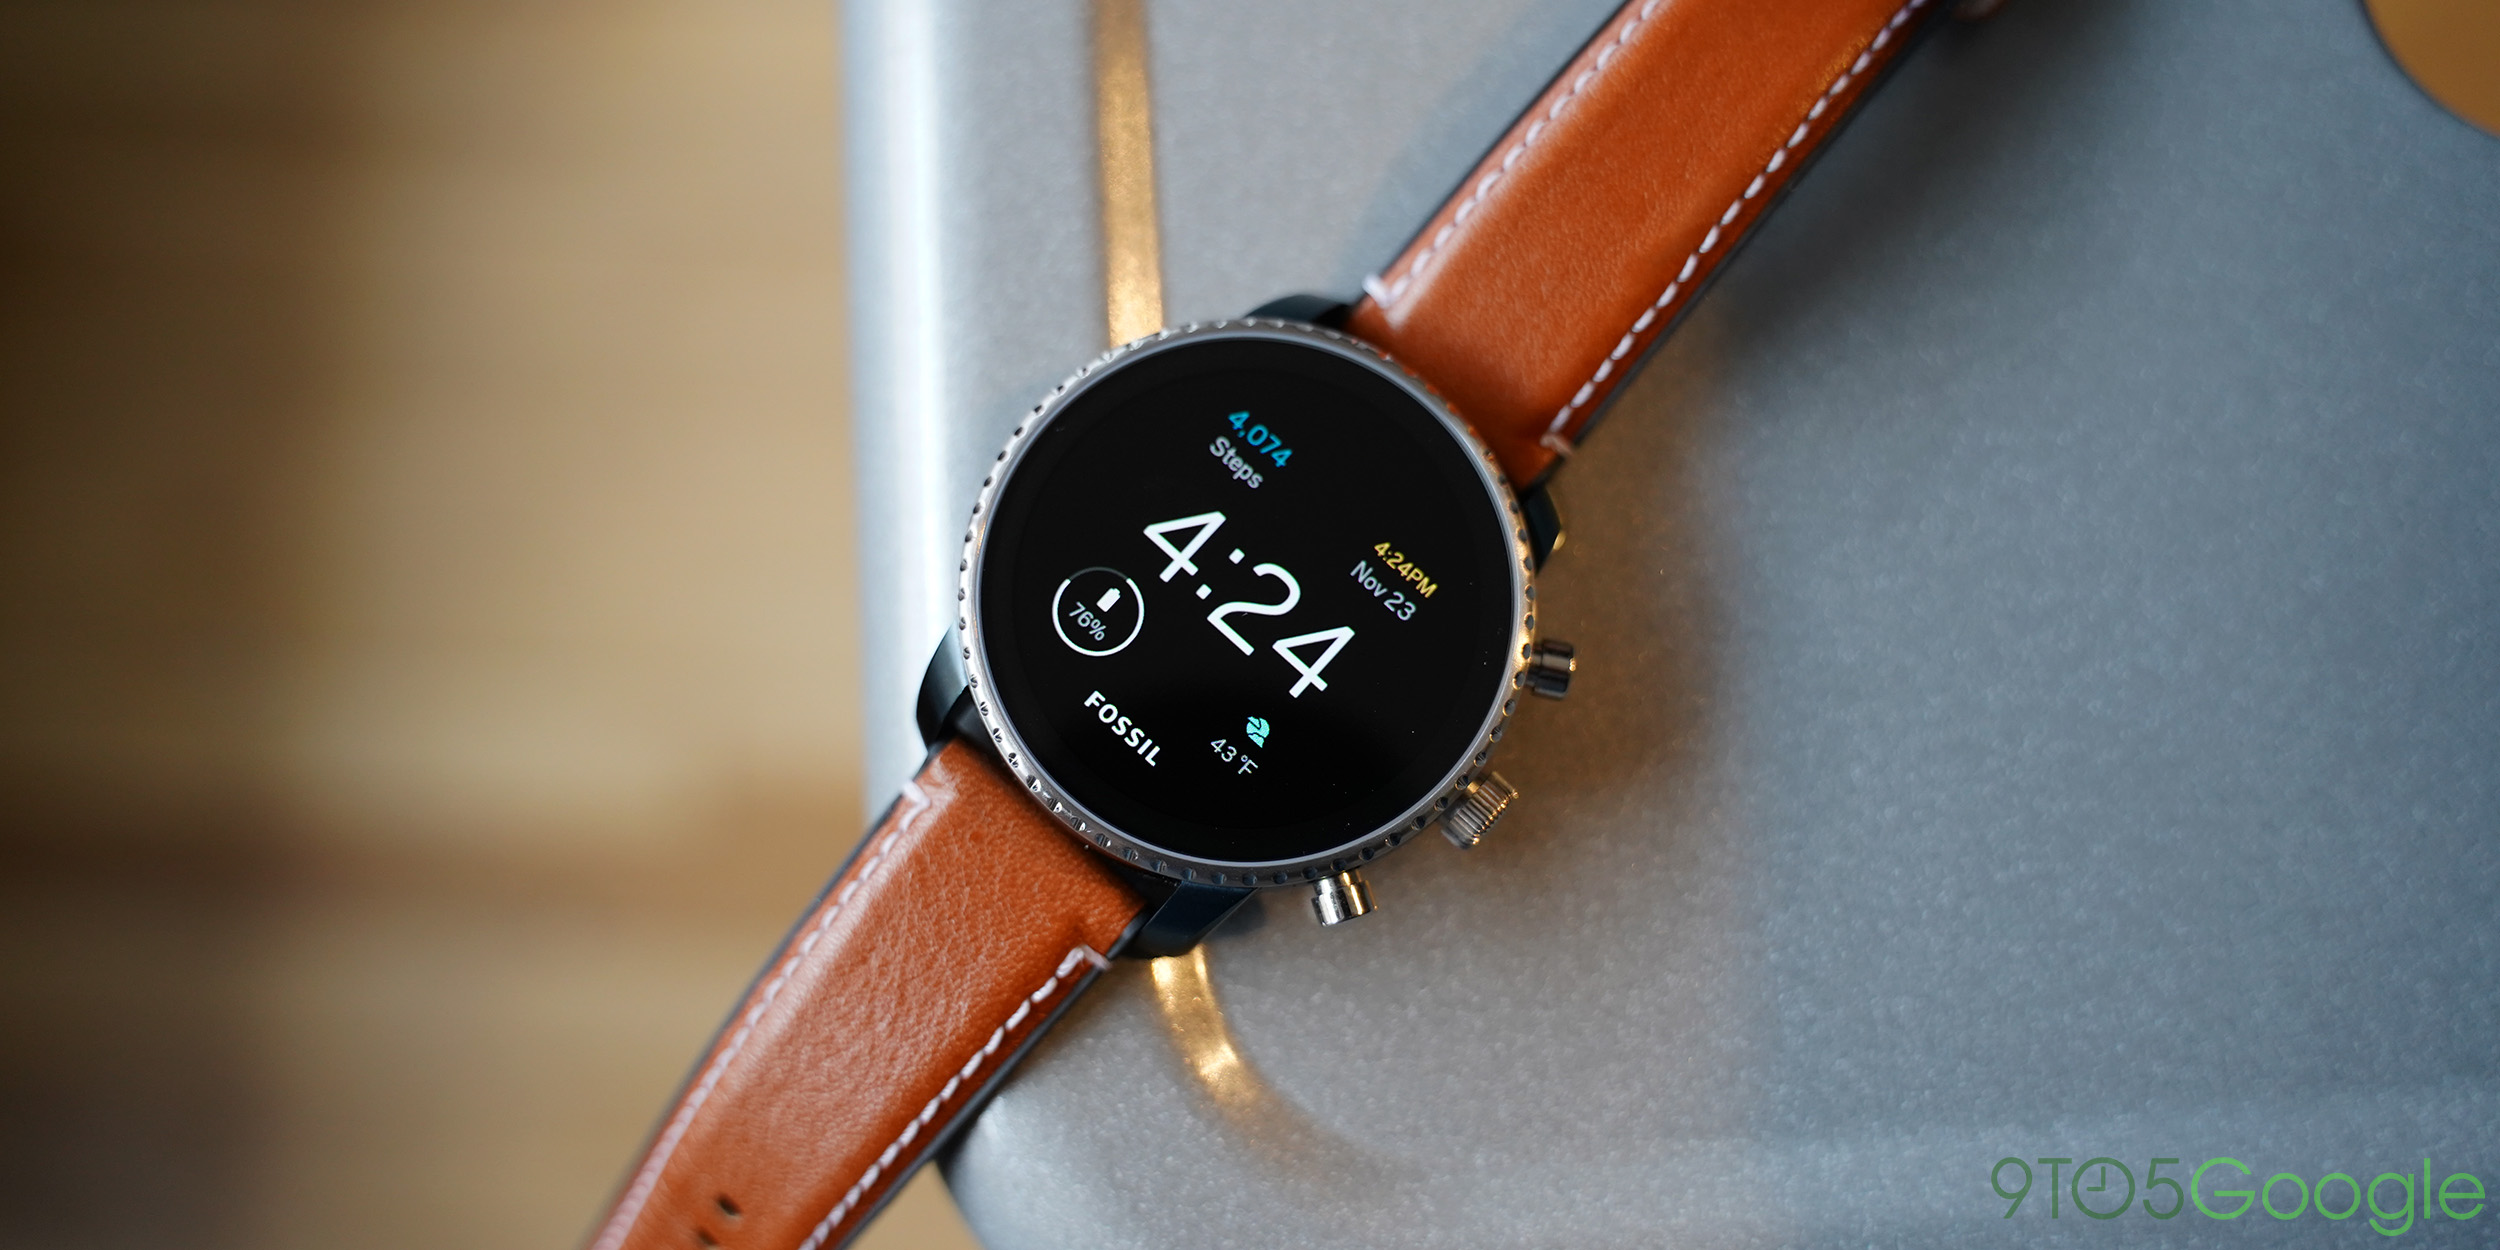 Google Maps on Wear OS broken for some users, shows a blank screen on some hardware